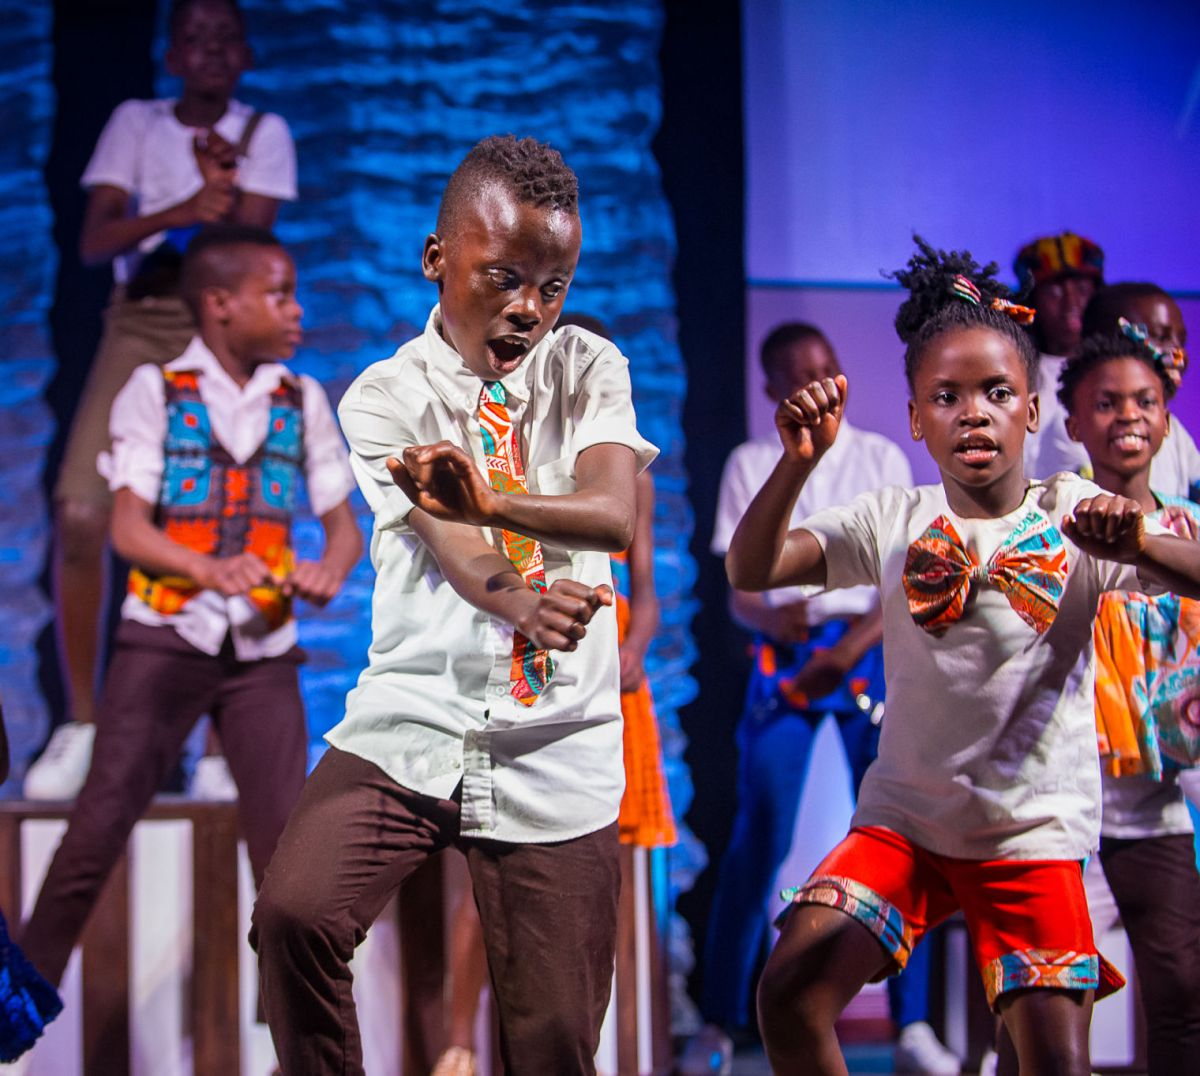 Songs of hope: African children's choir performs at ...